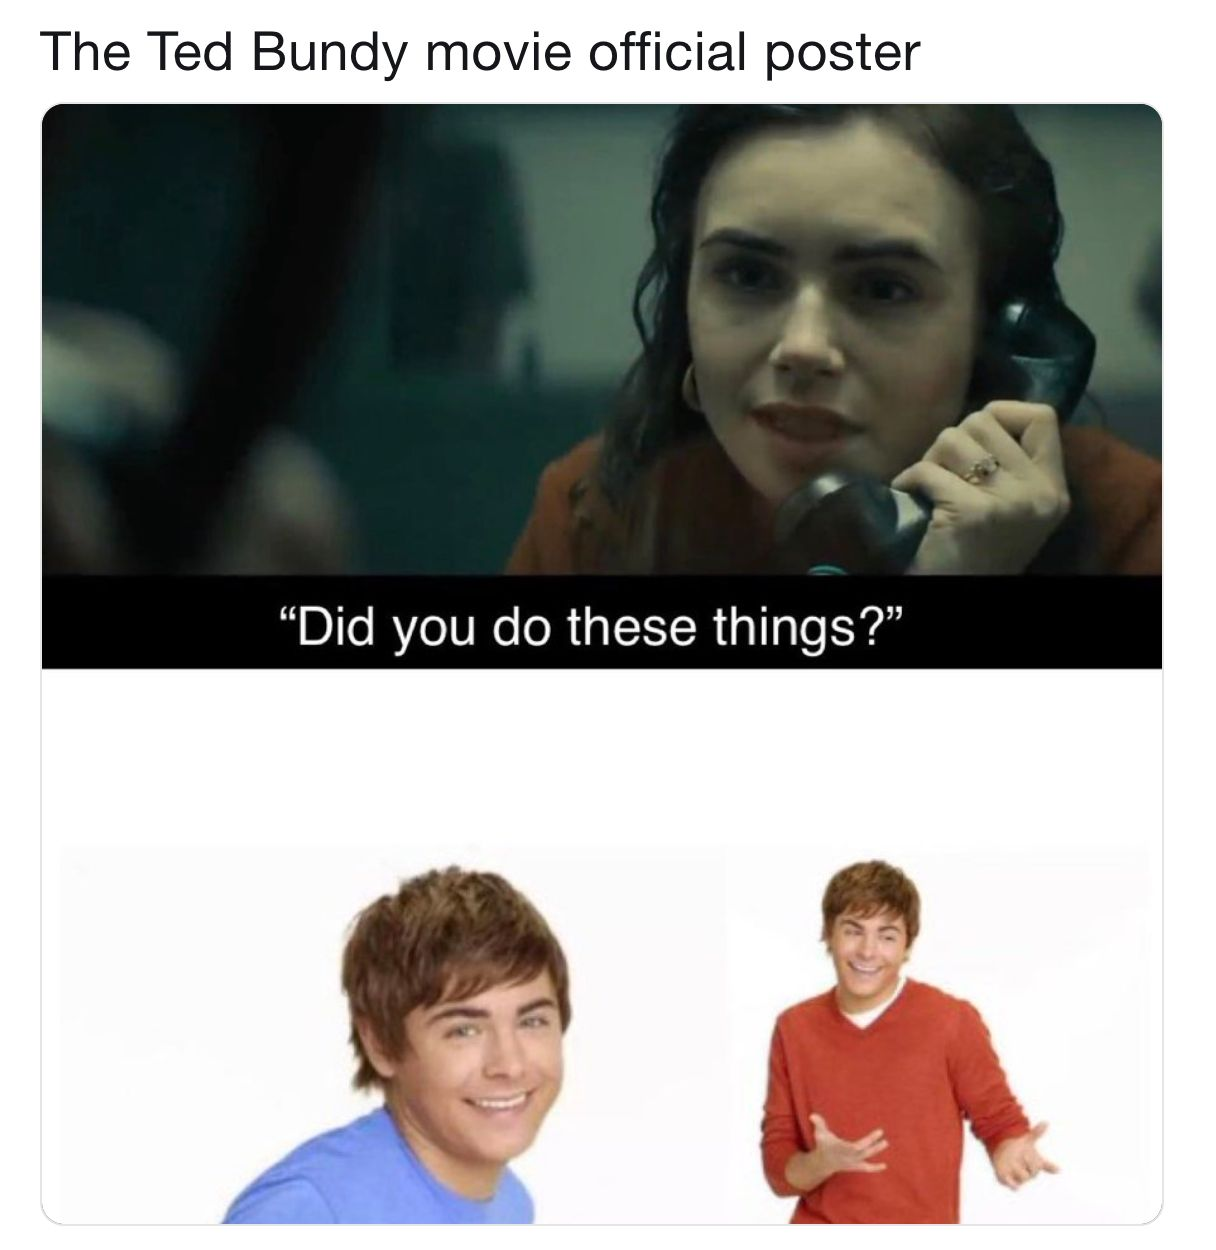 Image may contain: Ted Bundy memes, Ted Bundy, meme, Zac Efron, High School Musical, Troy Bolton, funny, reaction, review, film, movie, Text, Face, Apparel, Clothing, Human, Person